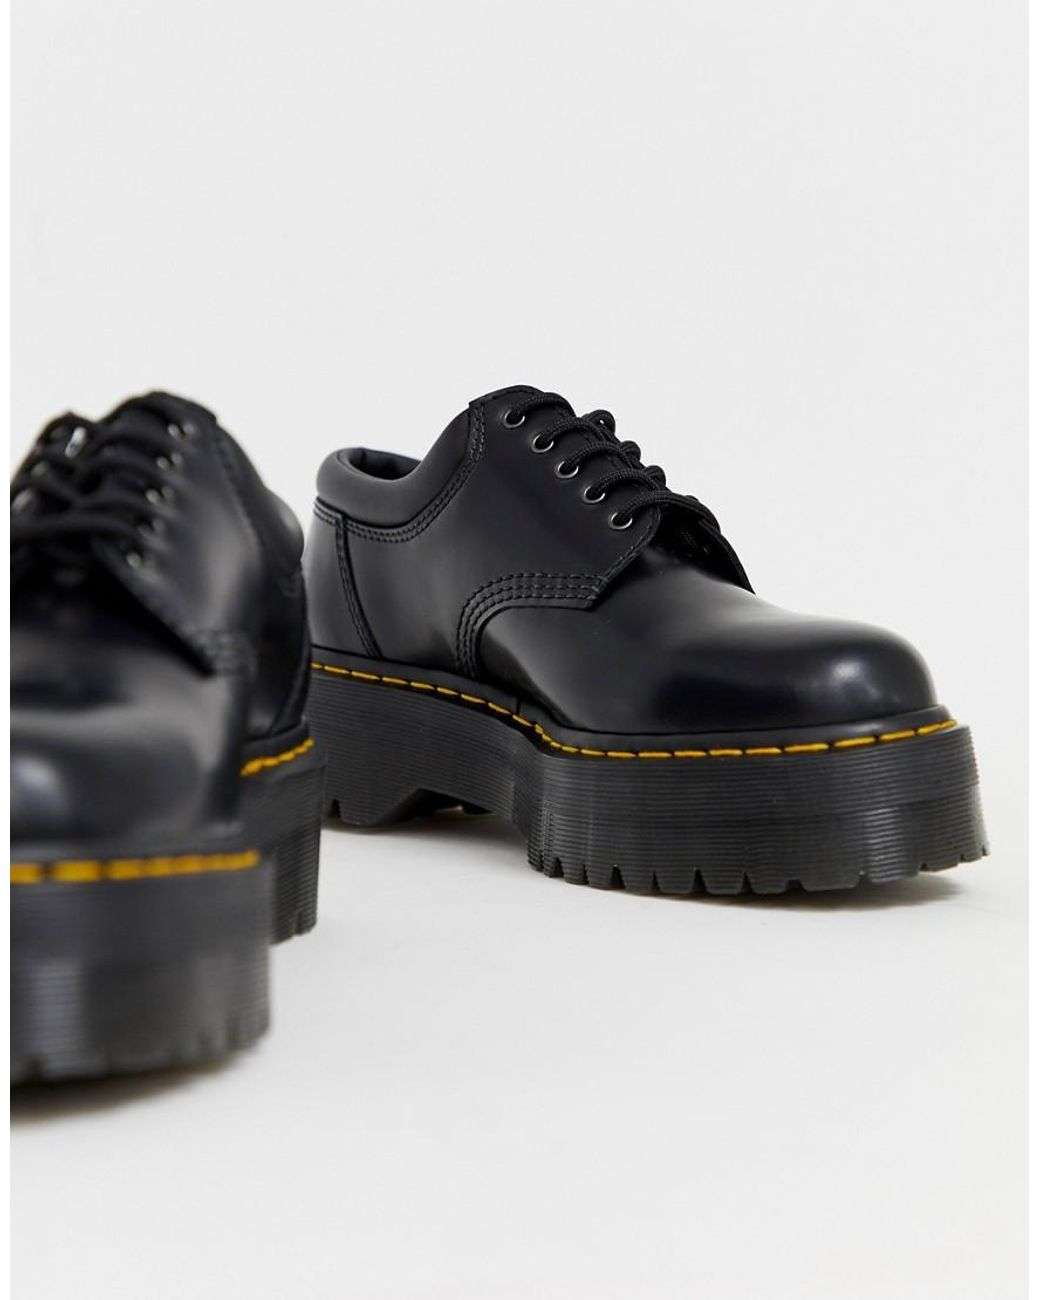 official images where can i buy picked up 8053 Quad Platform Shoes In Black